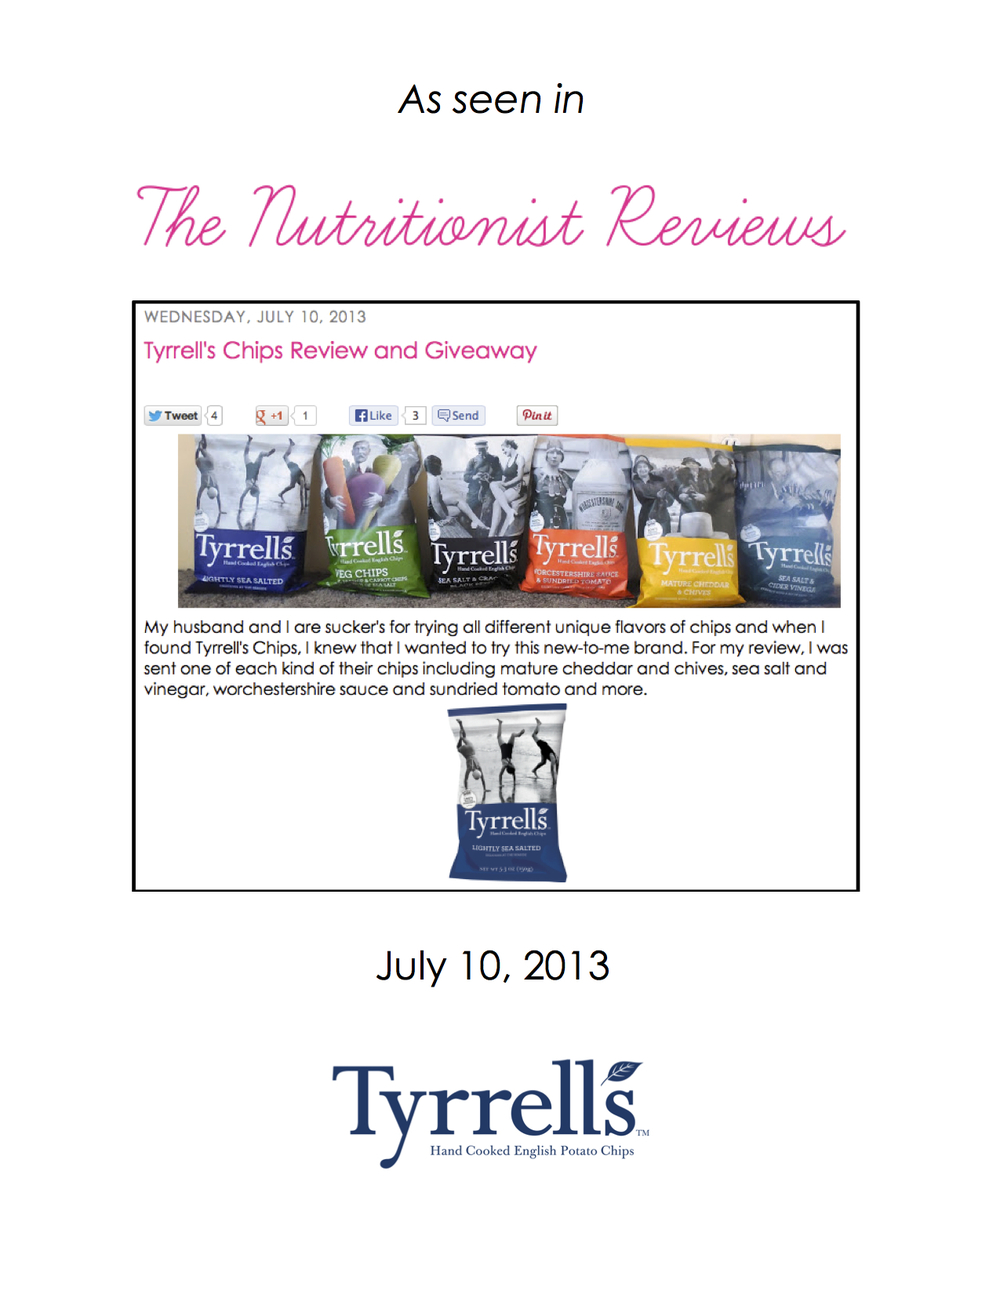 tyrrells-asseenin-thenutritionistreviews copy.jpg